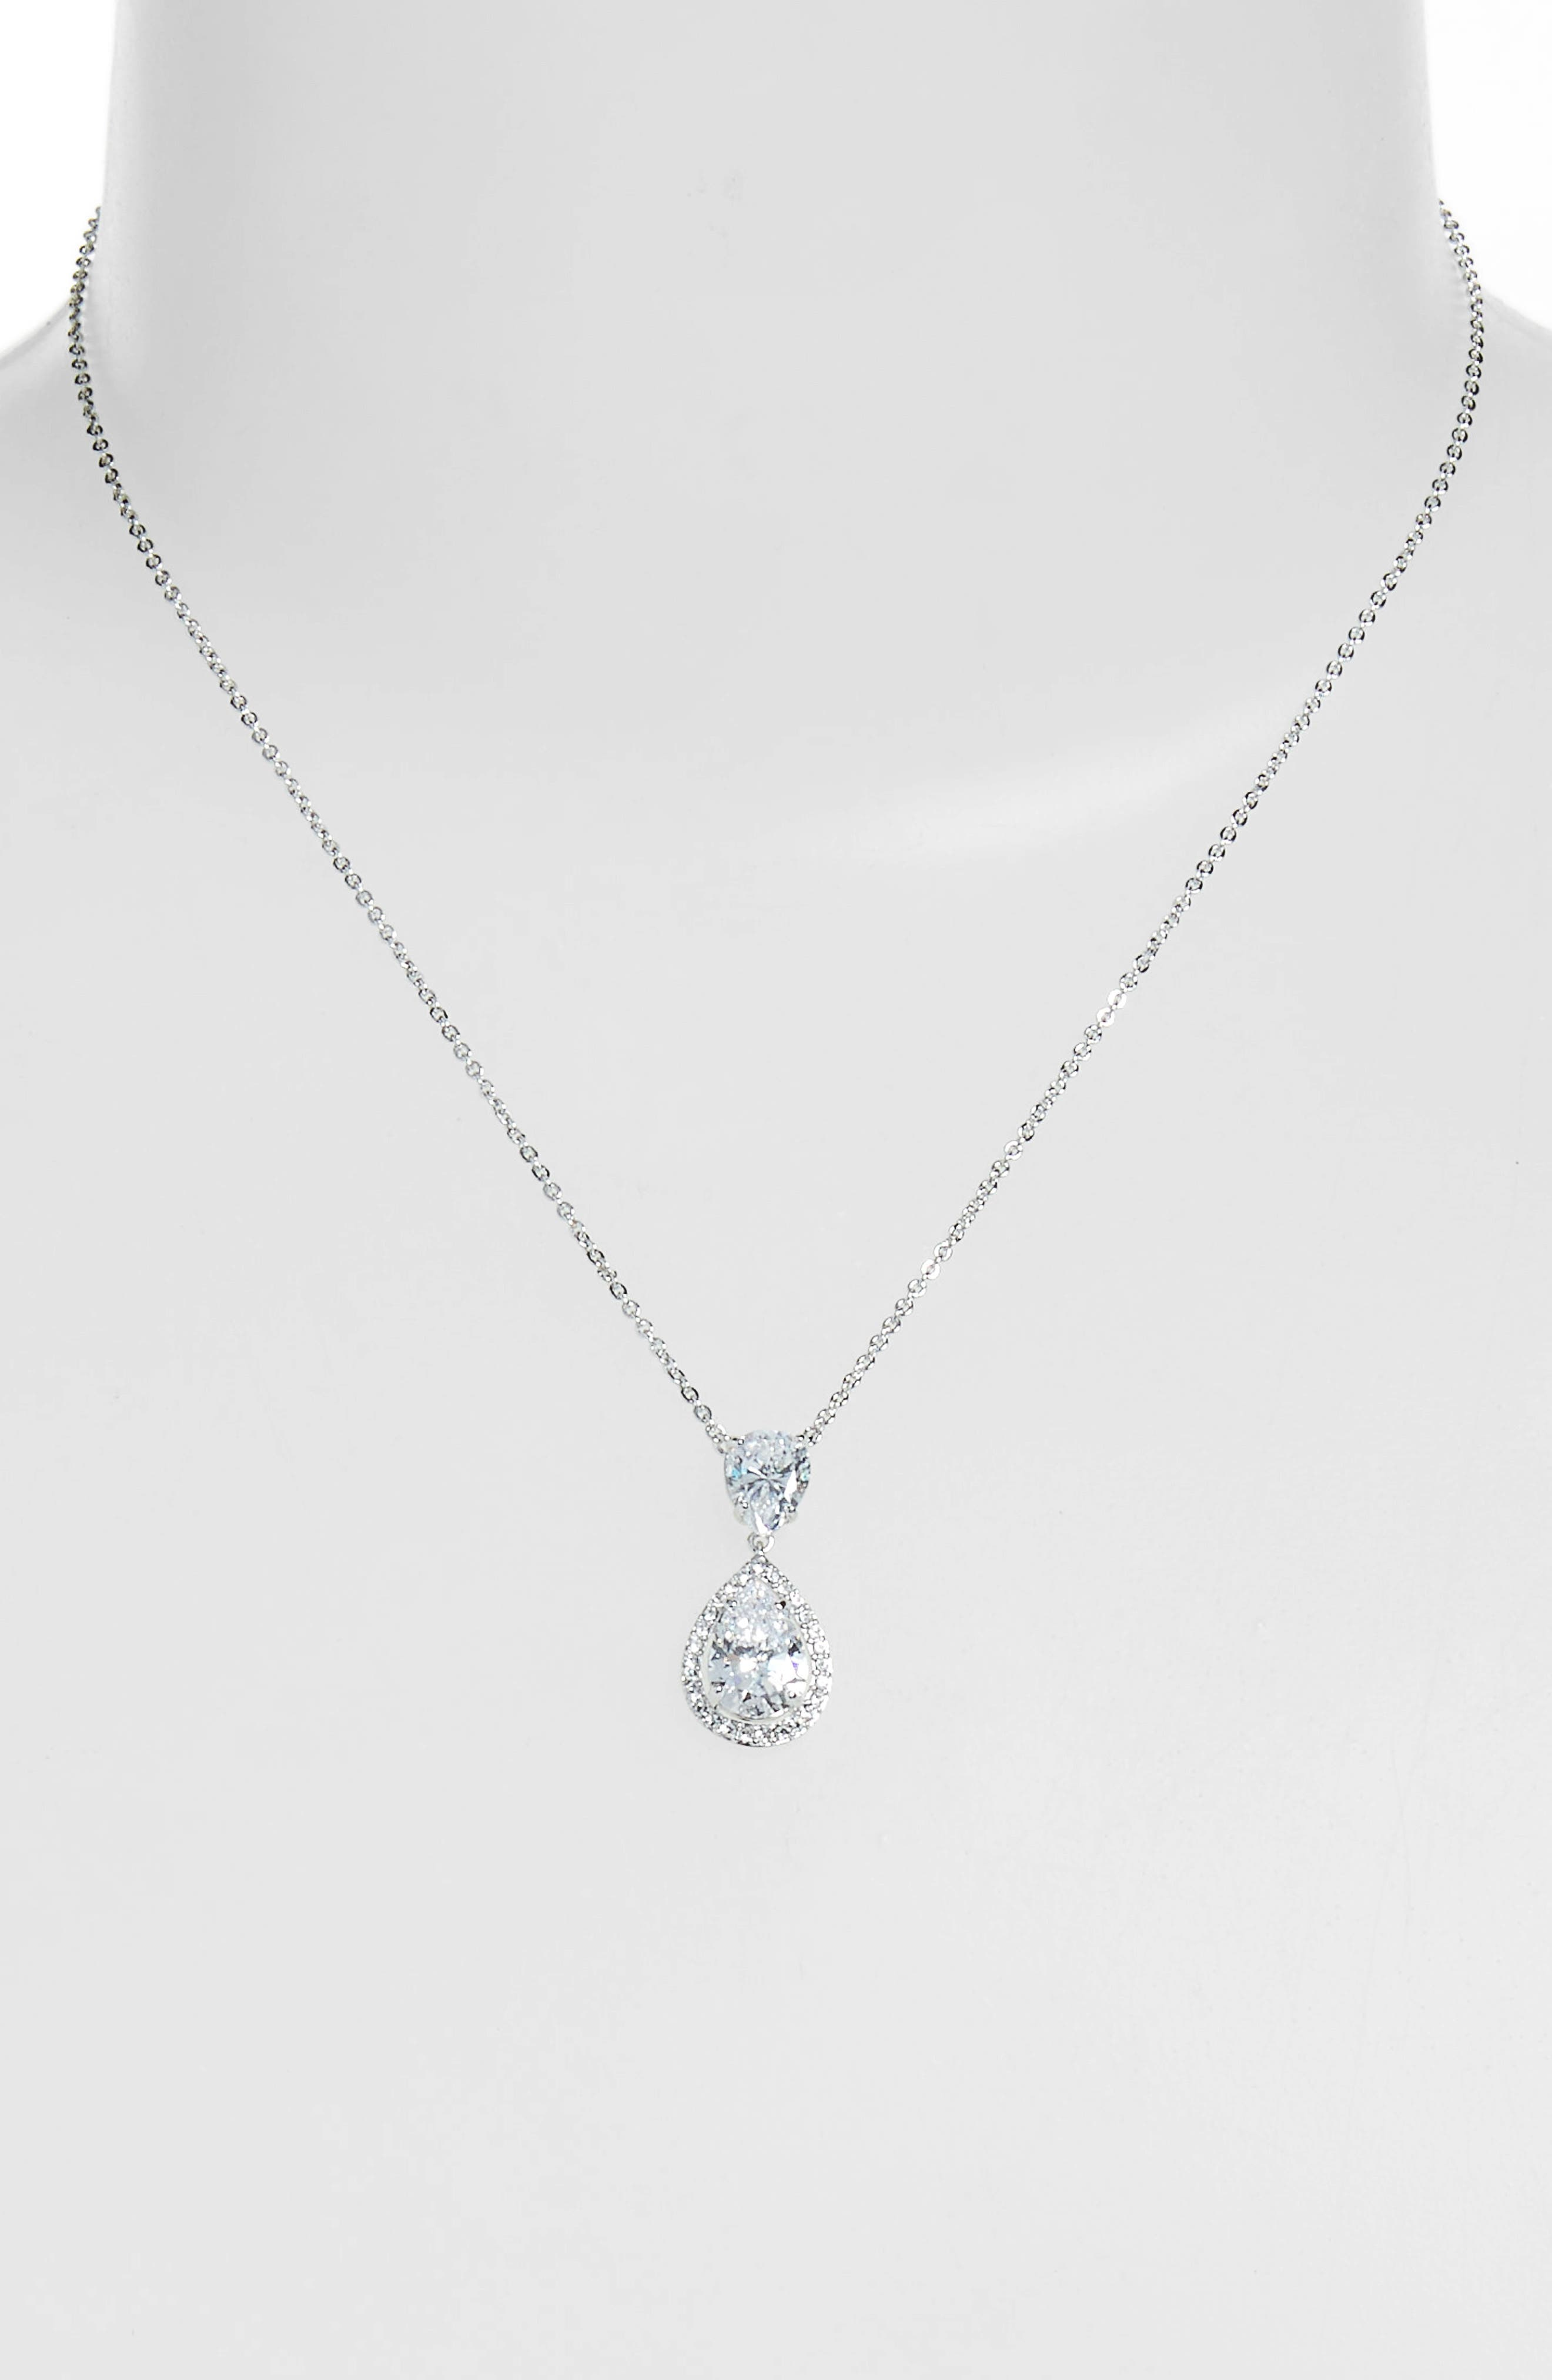 Crystal Teardrop Pendant Necklace,                             Alternate thumbnail 2, color,                             CLEAR- SILVER